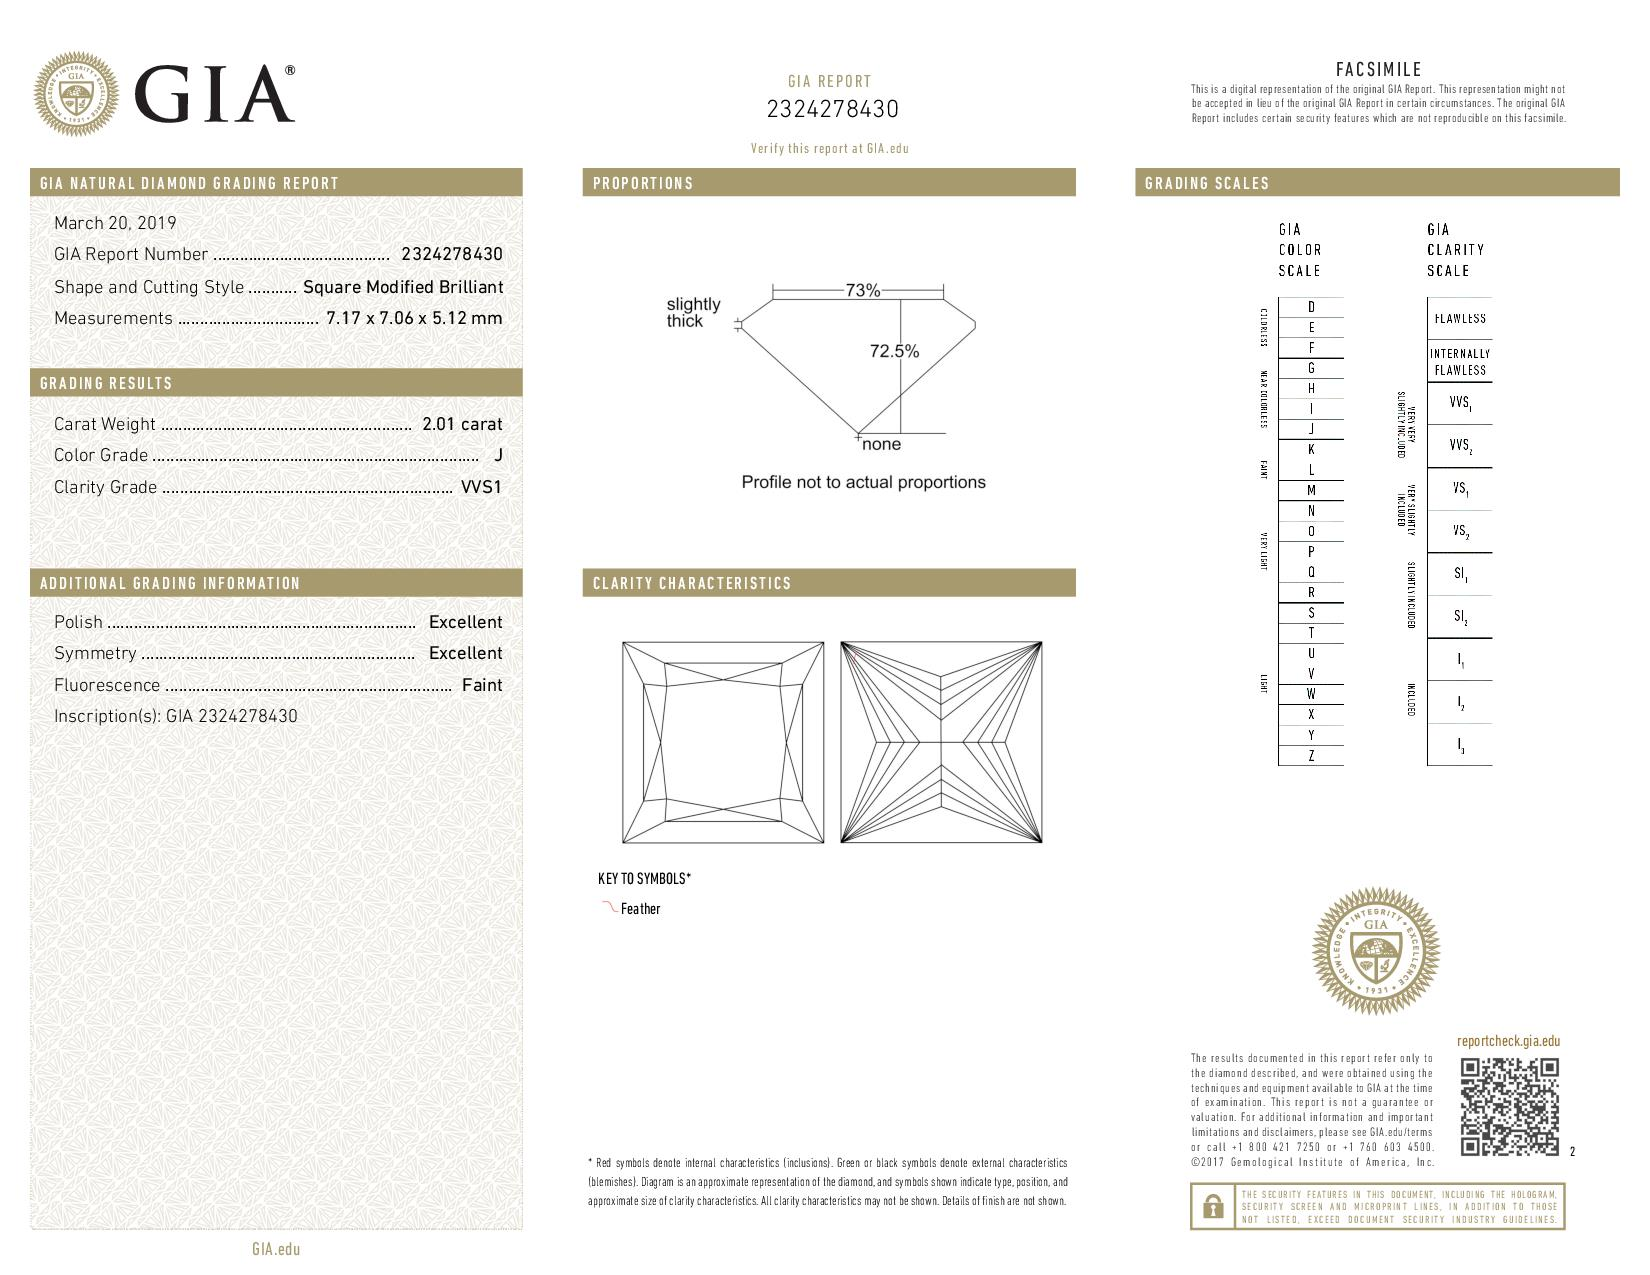 This is a 2.01 carat princess shape, J color, VVS1 clarity natural diamond accompanied by a GIA grading report.